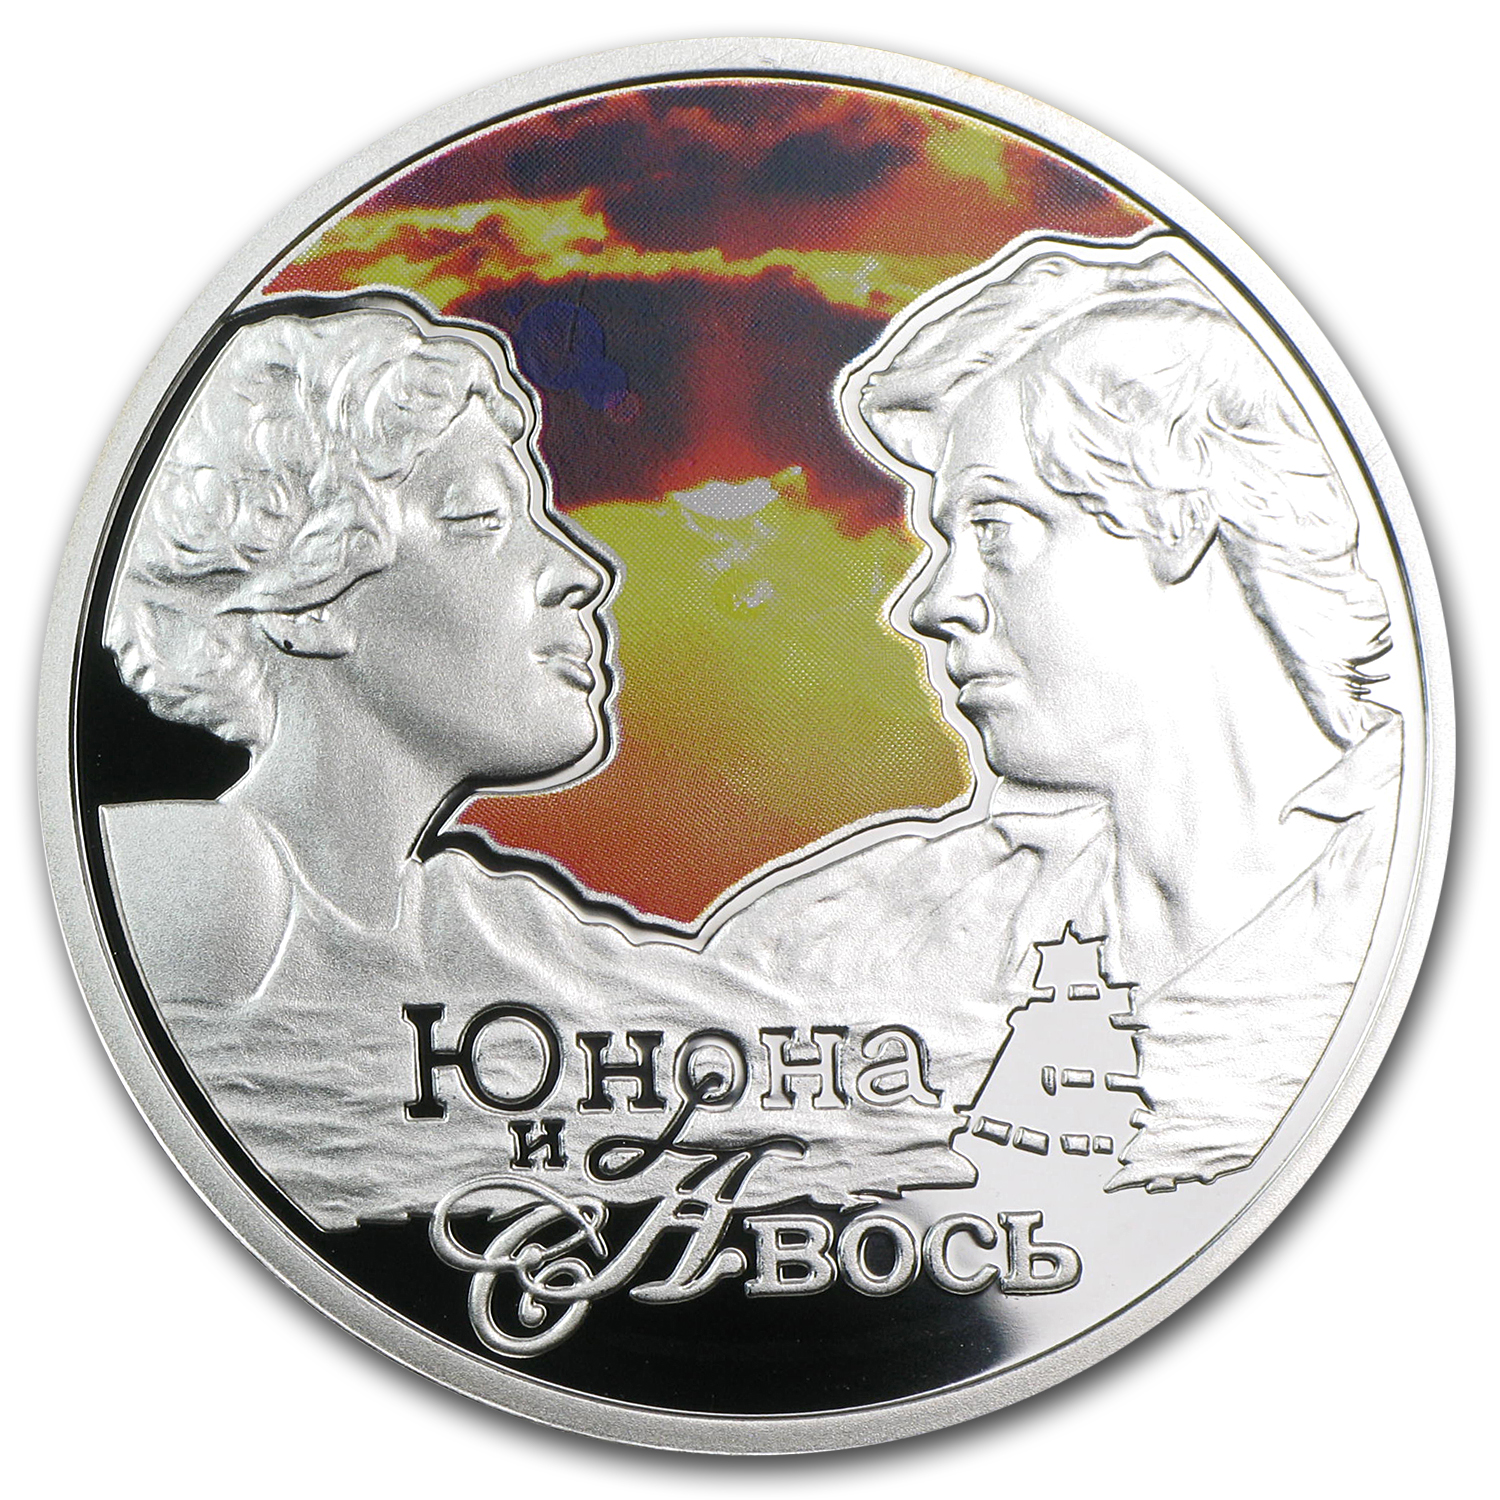 Niue 2011 $1 Russia Rock-Opera - Juno and Avos